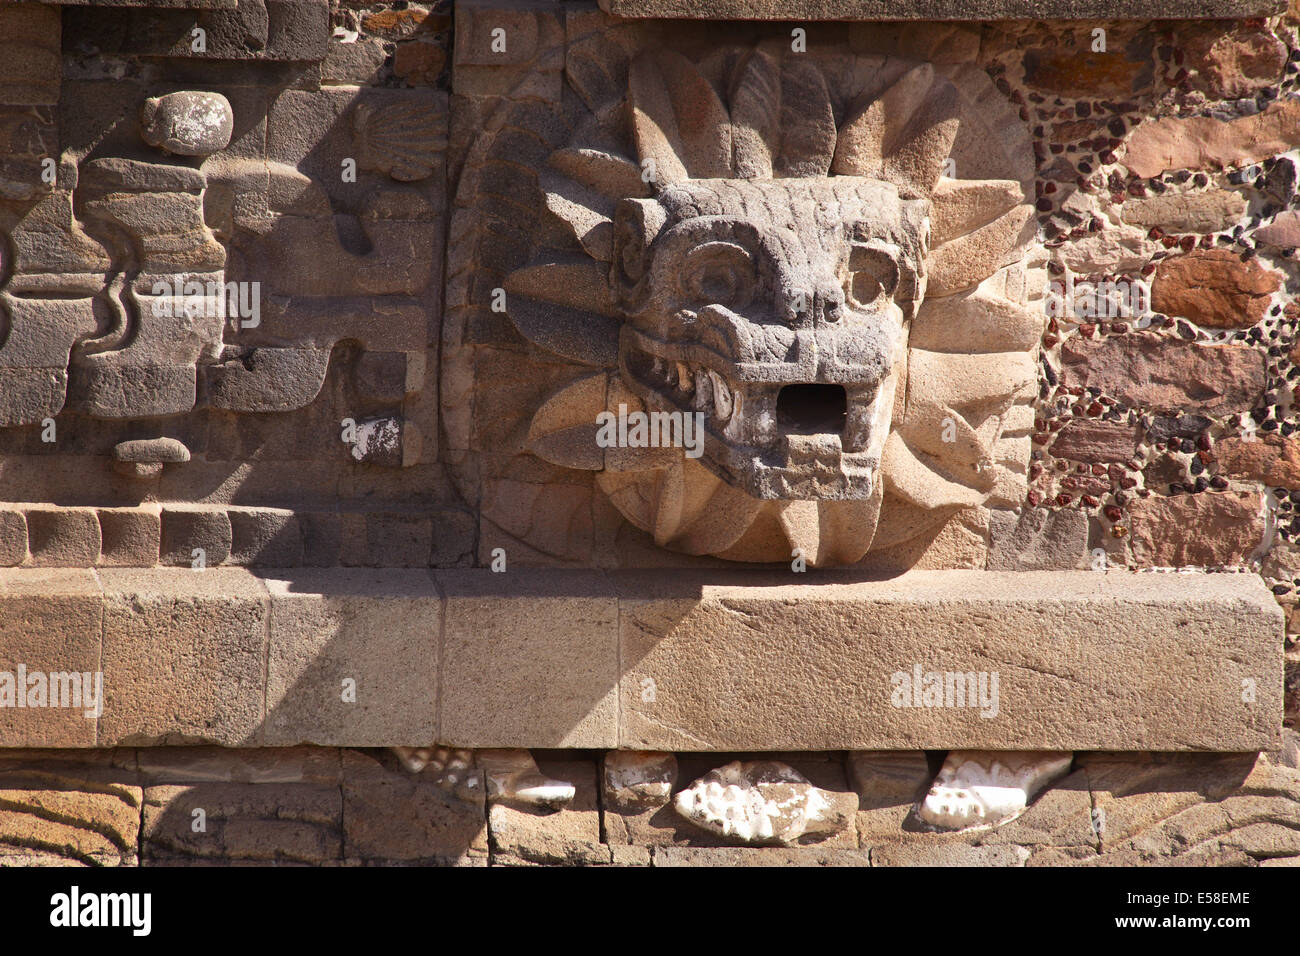 Serpent, Temple of Quetzalcoatl, Teotihuacan, Mexico. Stock Photo